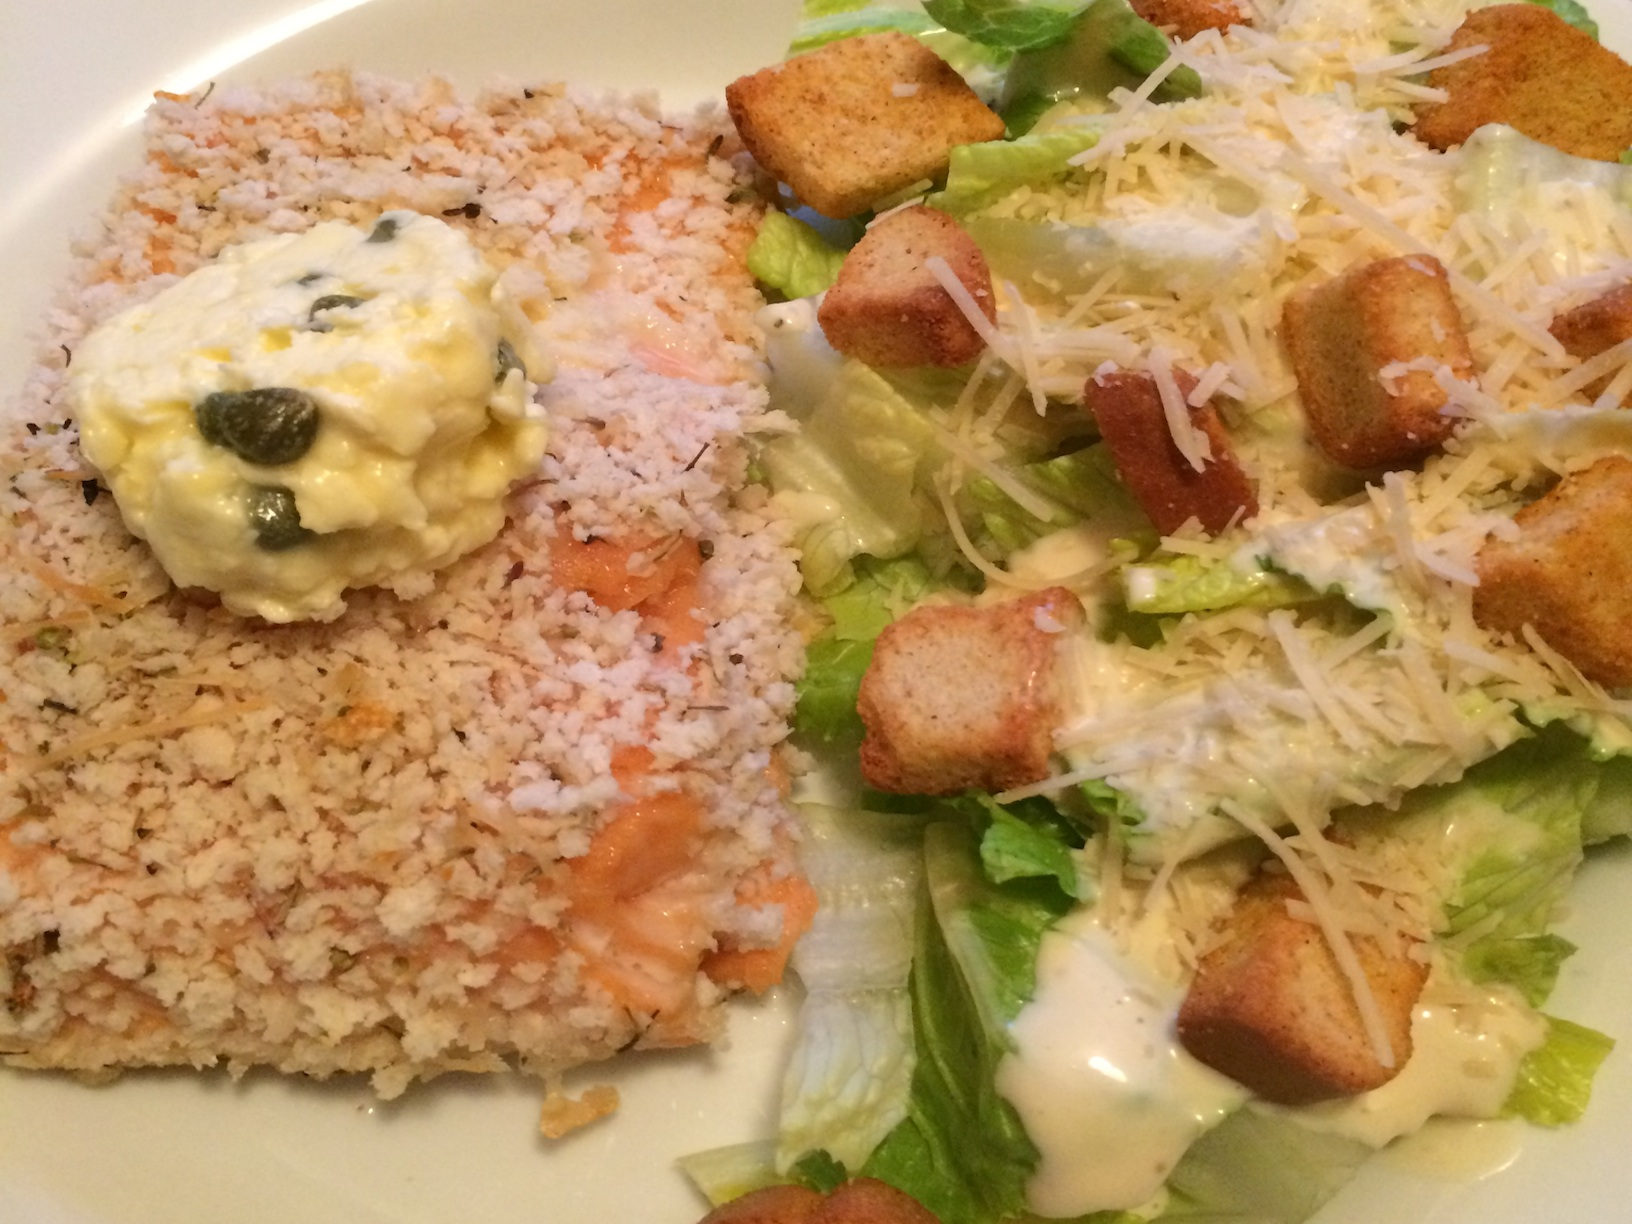 Salmon with Parmesan Herb Breading w/ Caesar Salad